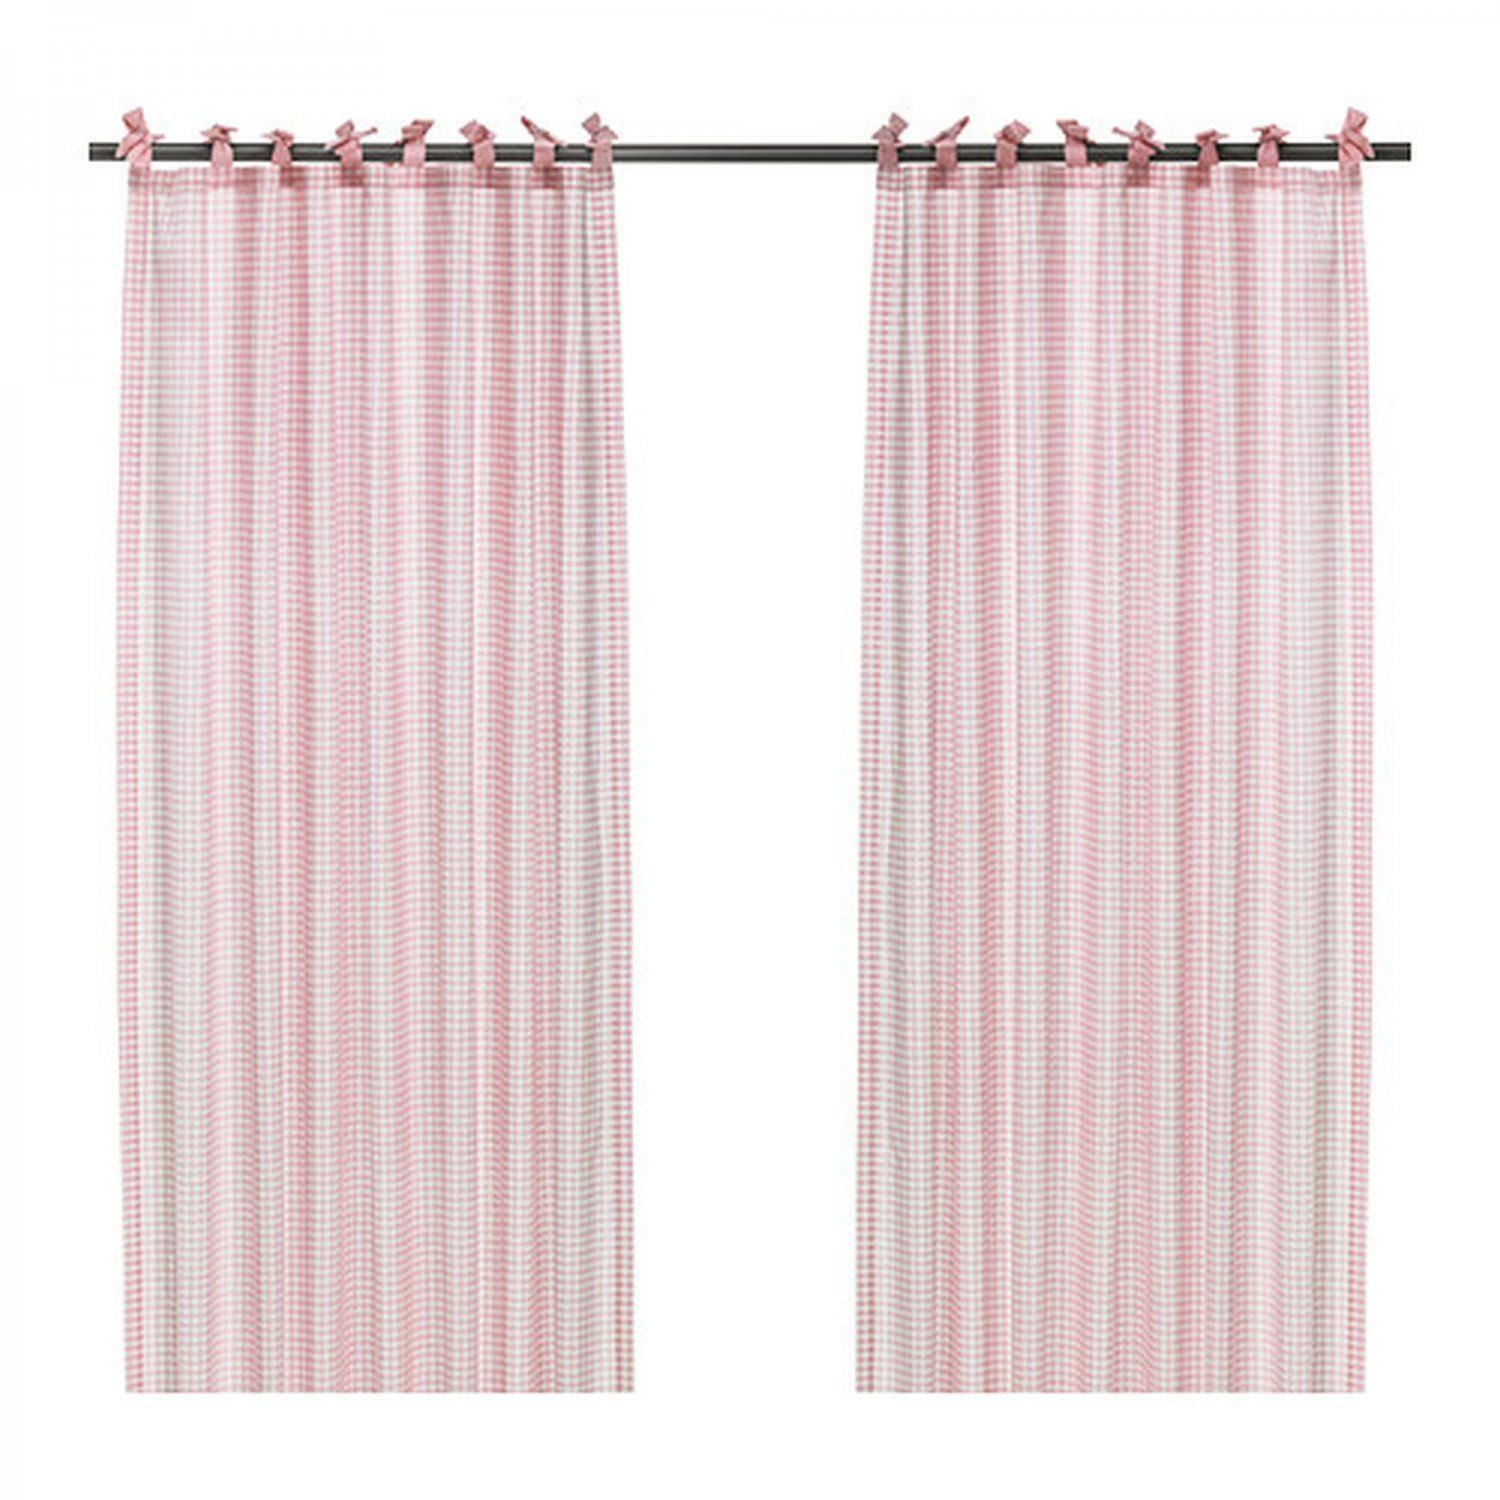 Ikea Perth Curtains Ikea Nyvaken Curtains Drapes Pink Check Gingham Country Classic